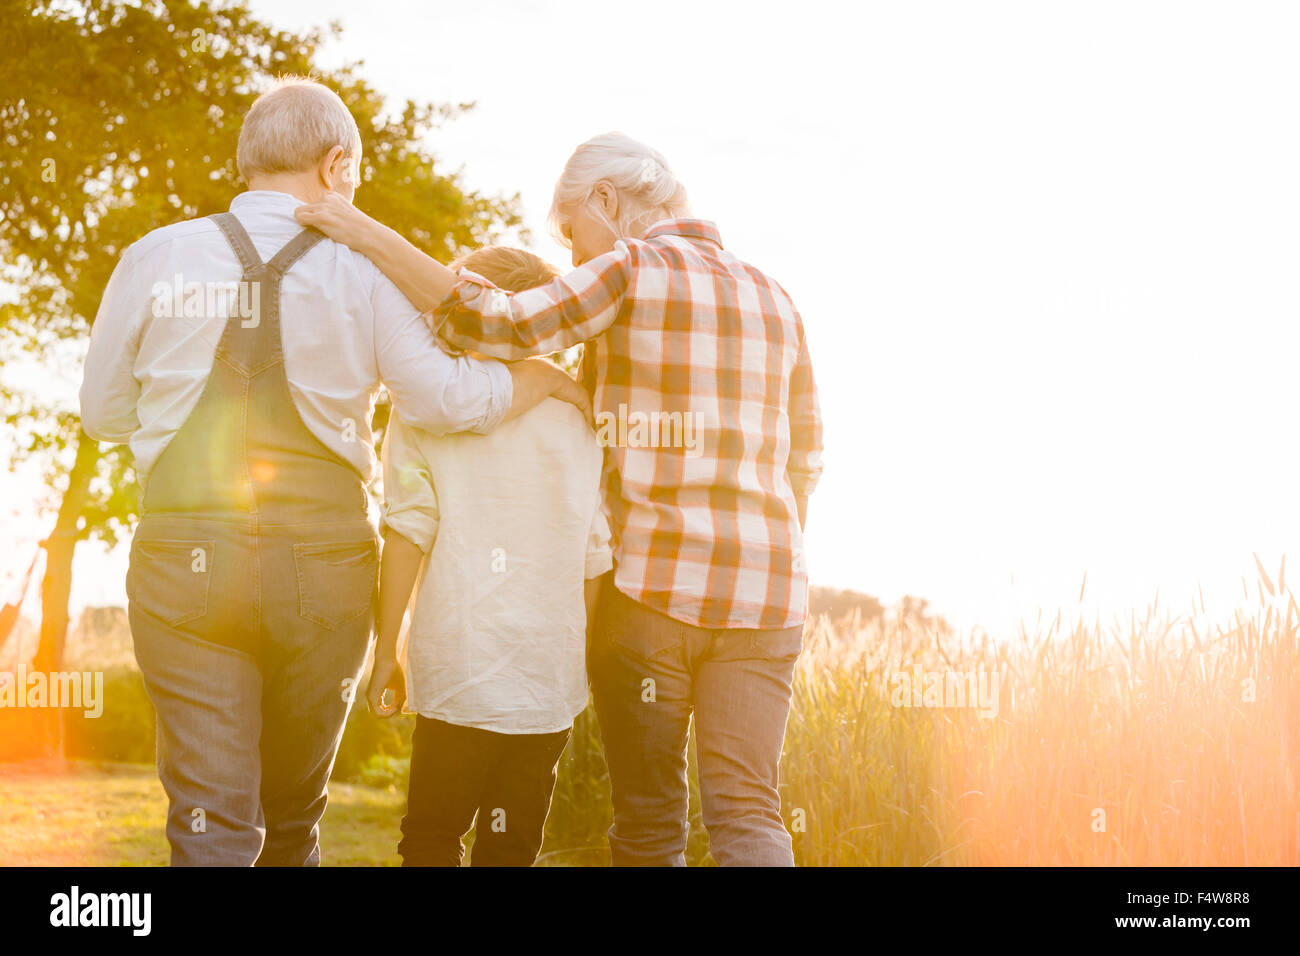 Affectionate grandparents and grandson walking along sunny rural wheat field Stock Photo